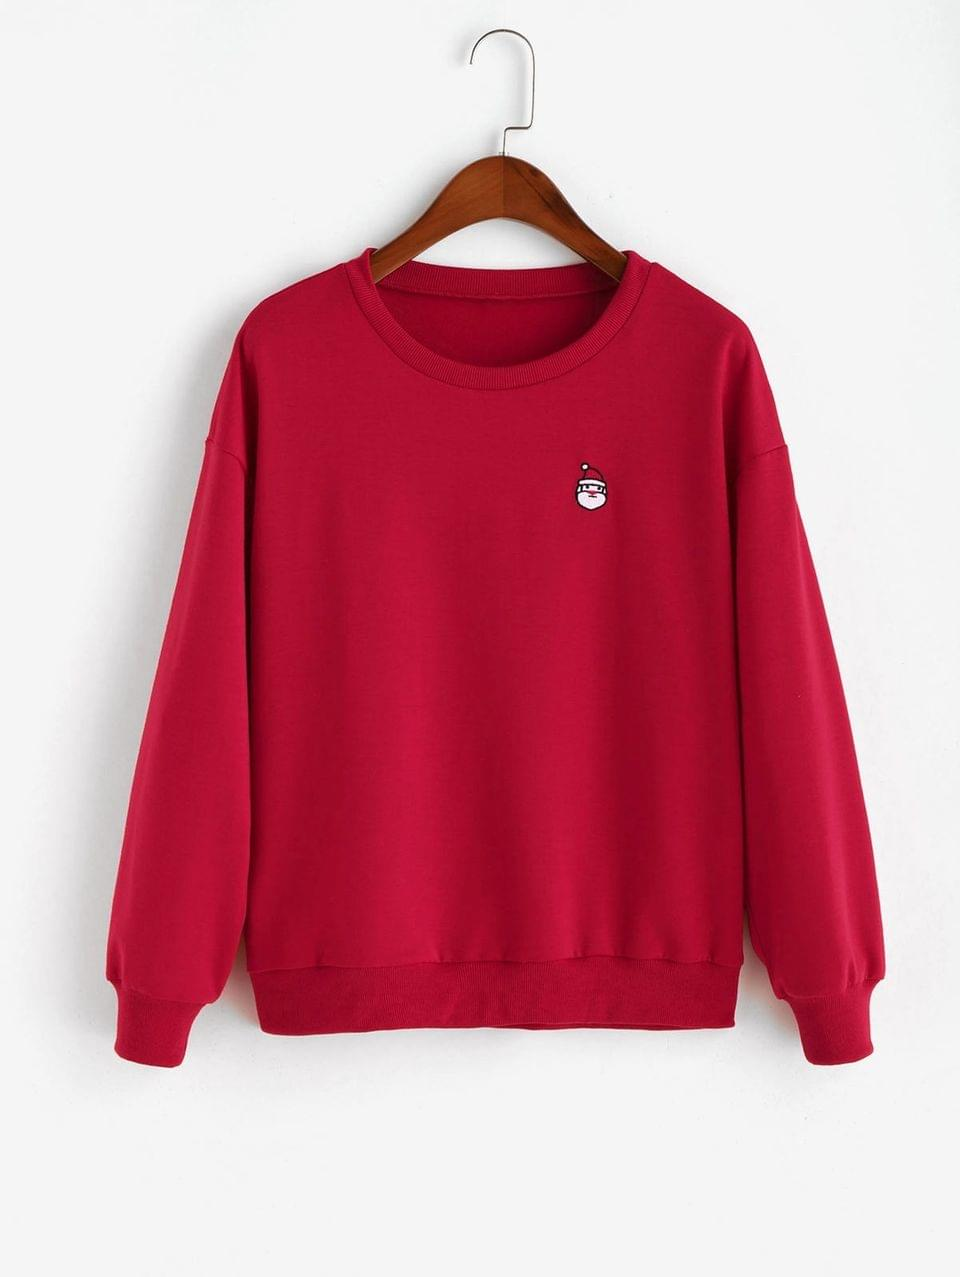 Women's Christmas Santa Embroidered Drop Shoulder Sweatshirt - Lava Red S